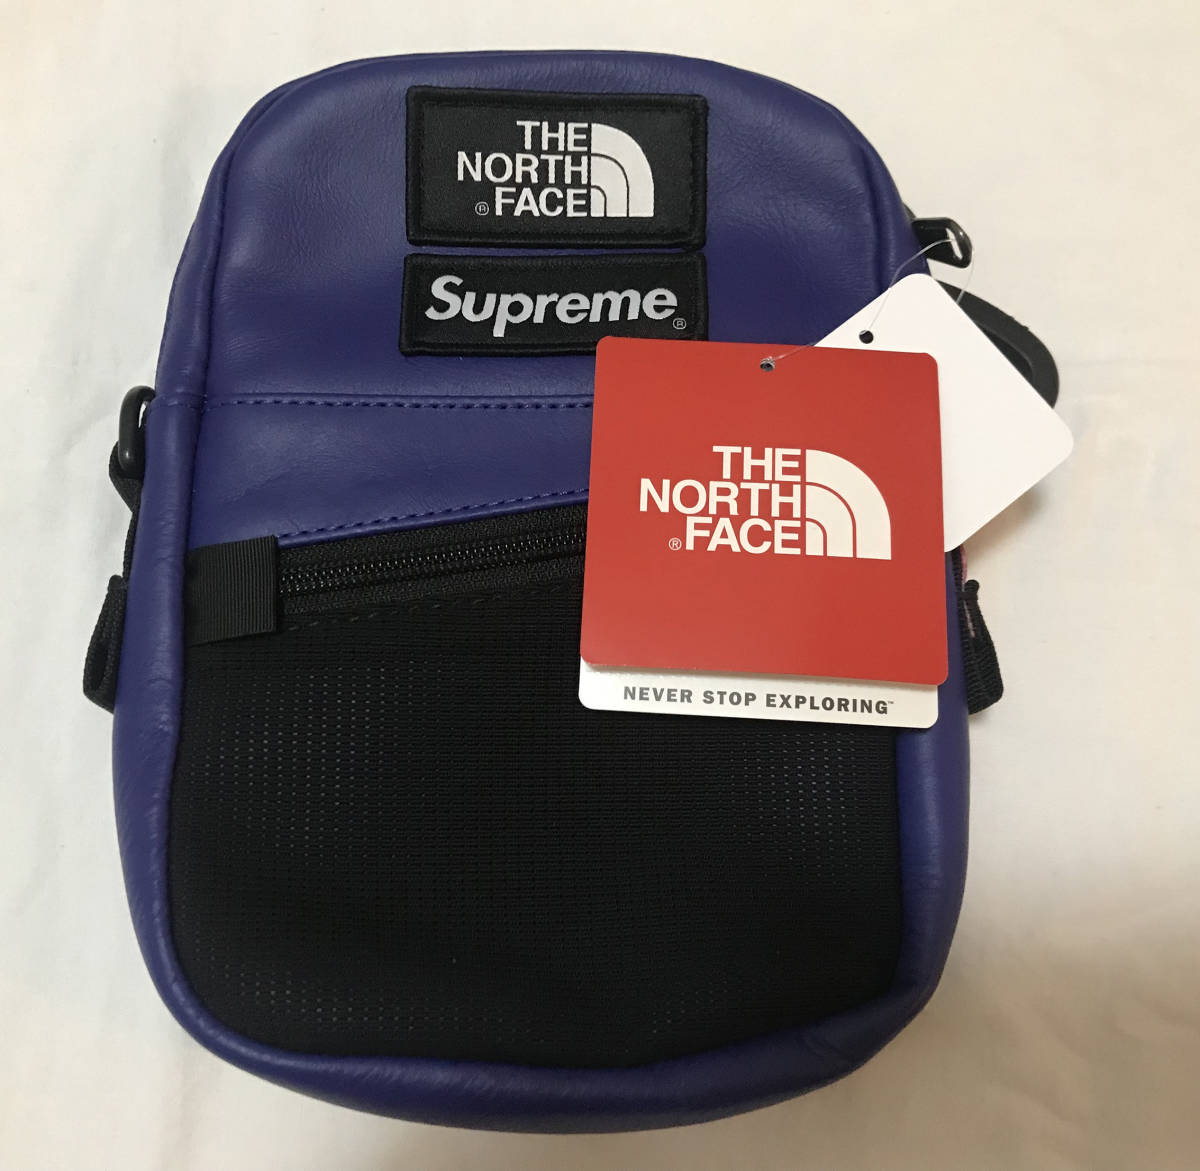 3884d557a1e 限定 新品 SUPREME X THE NORTH FACE LEATHER SHOULDER BAG BLUE PURPLE シュプリーム  ノースフェイス レザー ショルダー バッグ